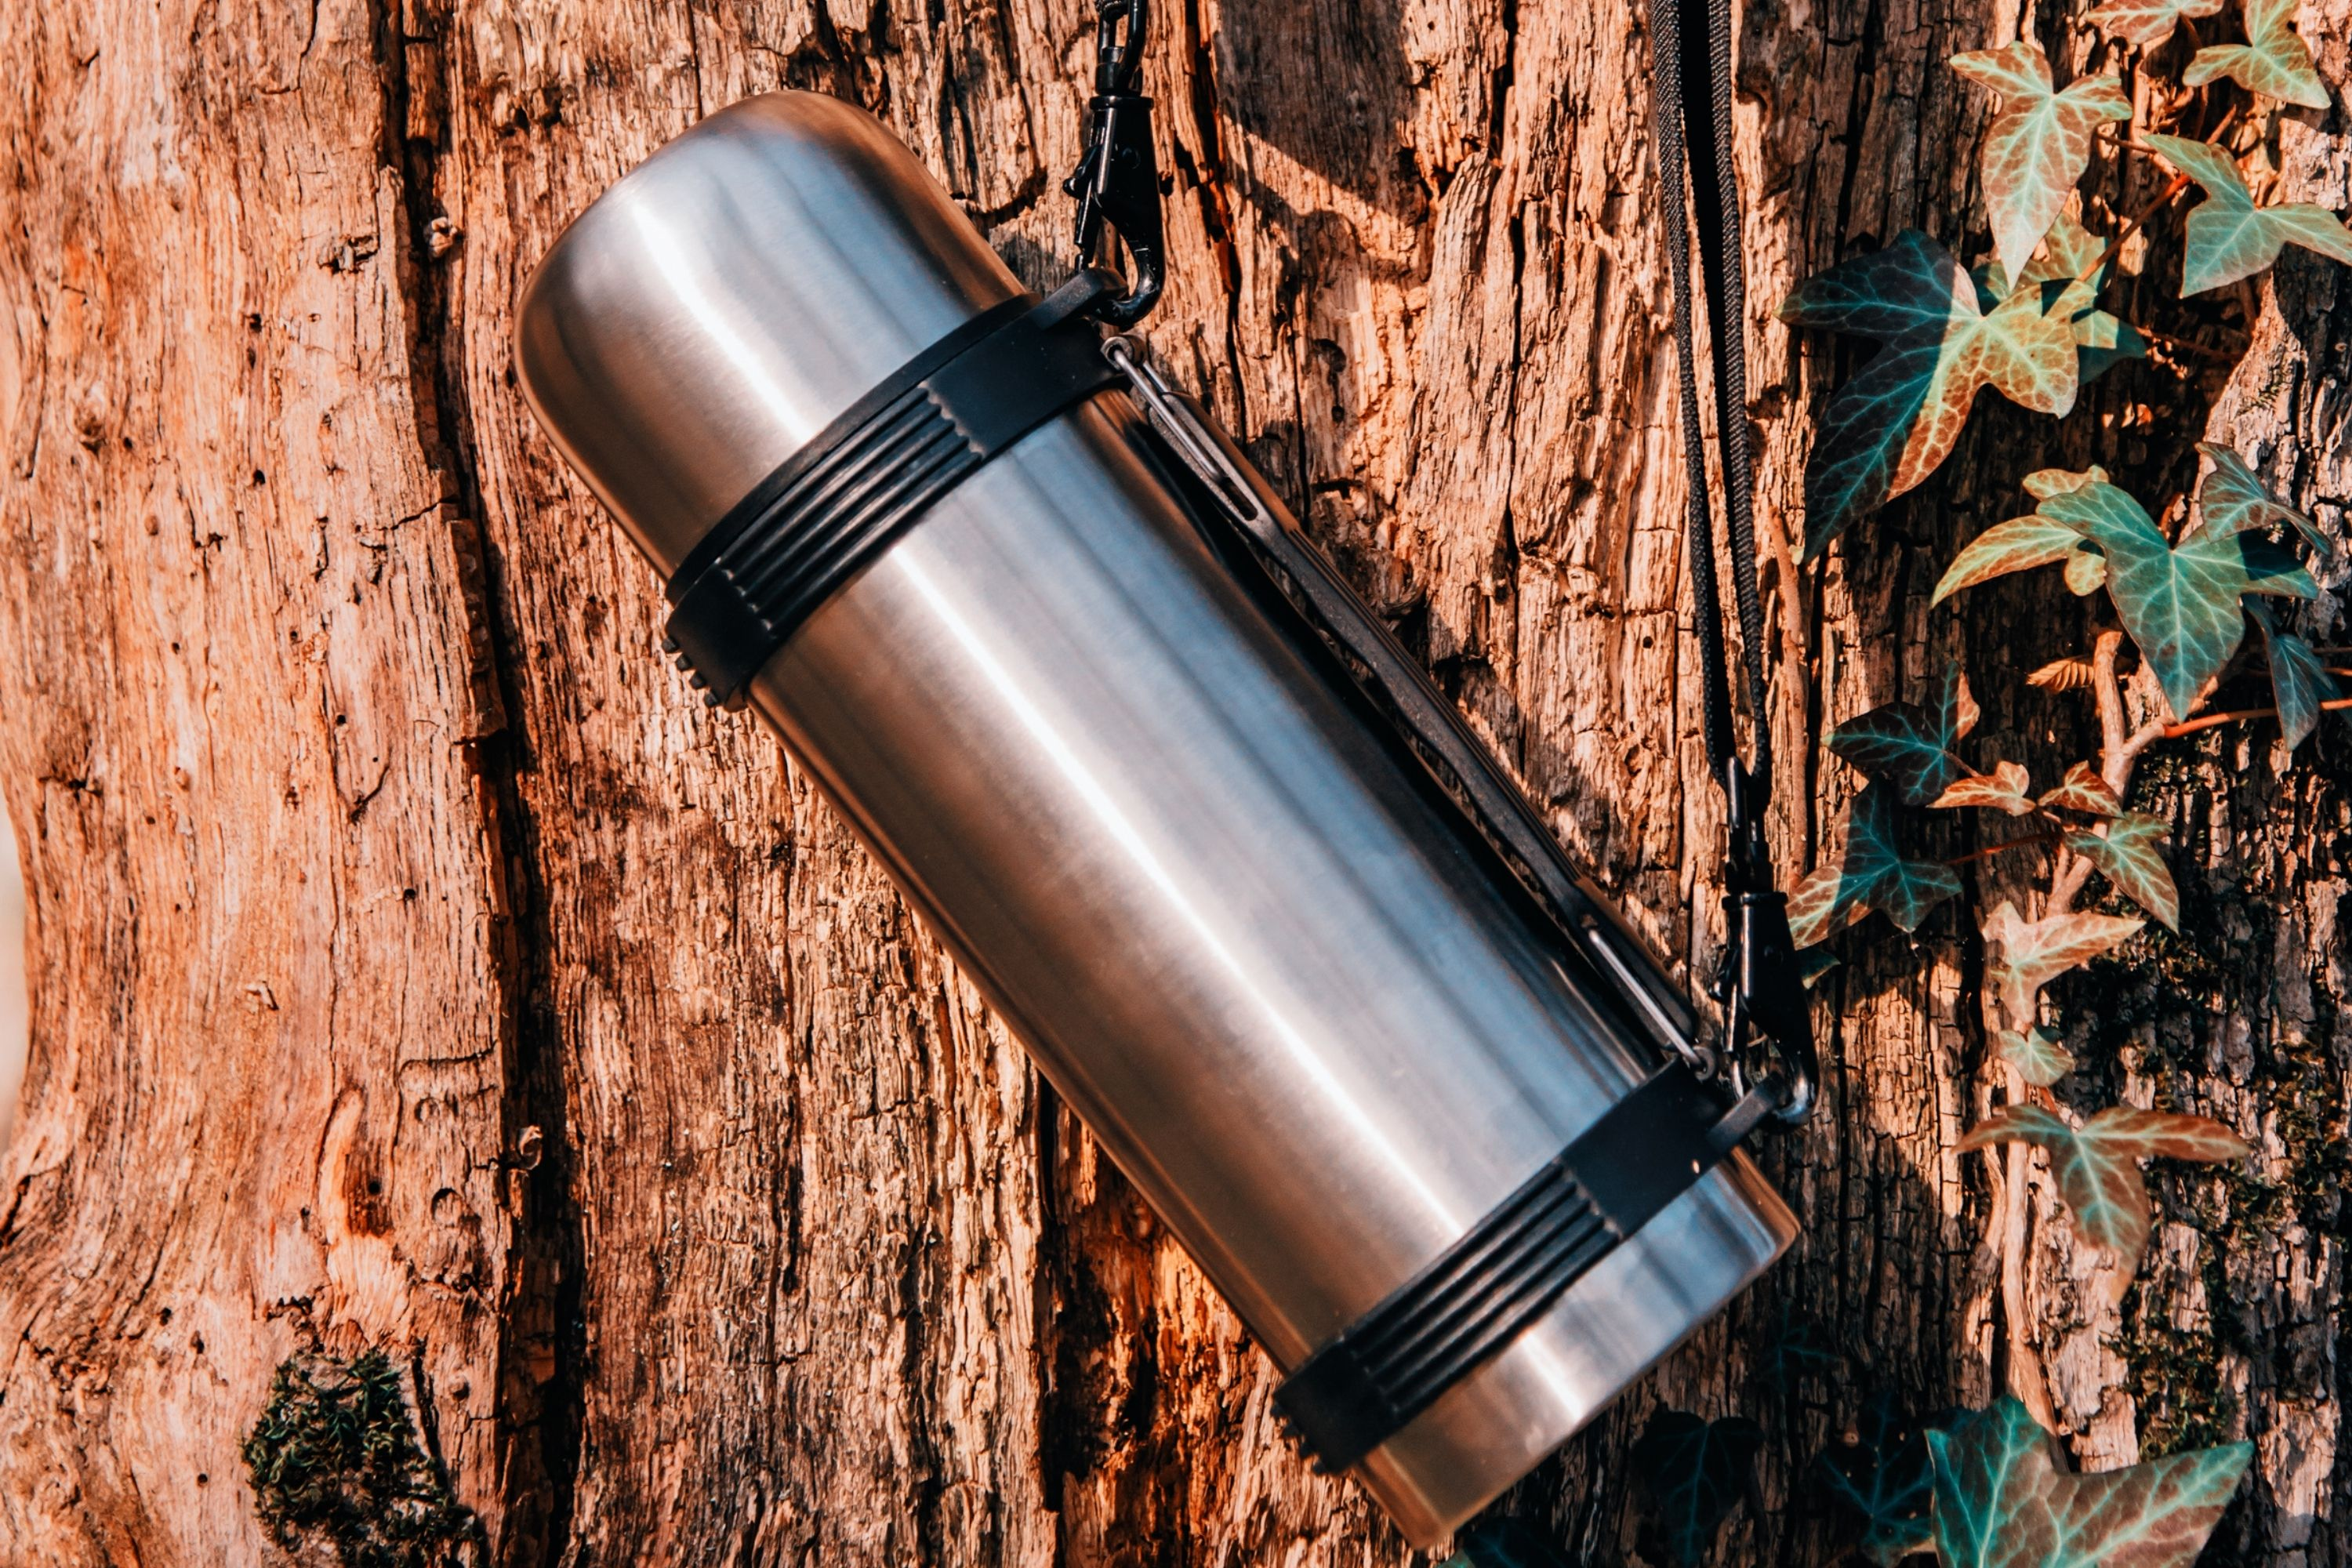 How to Clean An Inside Of a Stainless Steel Thermos Flask